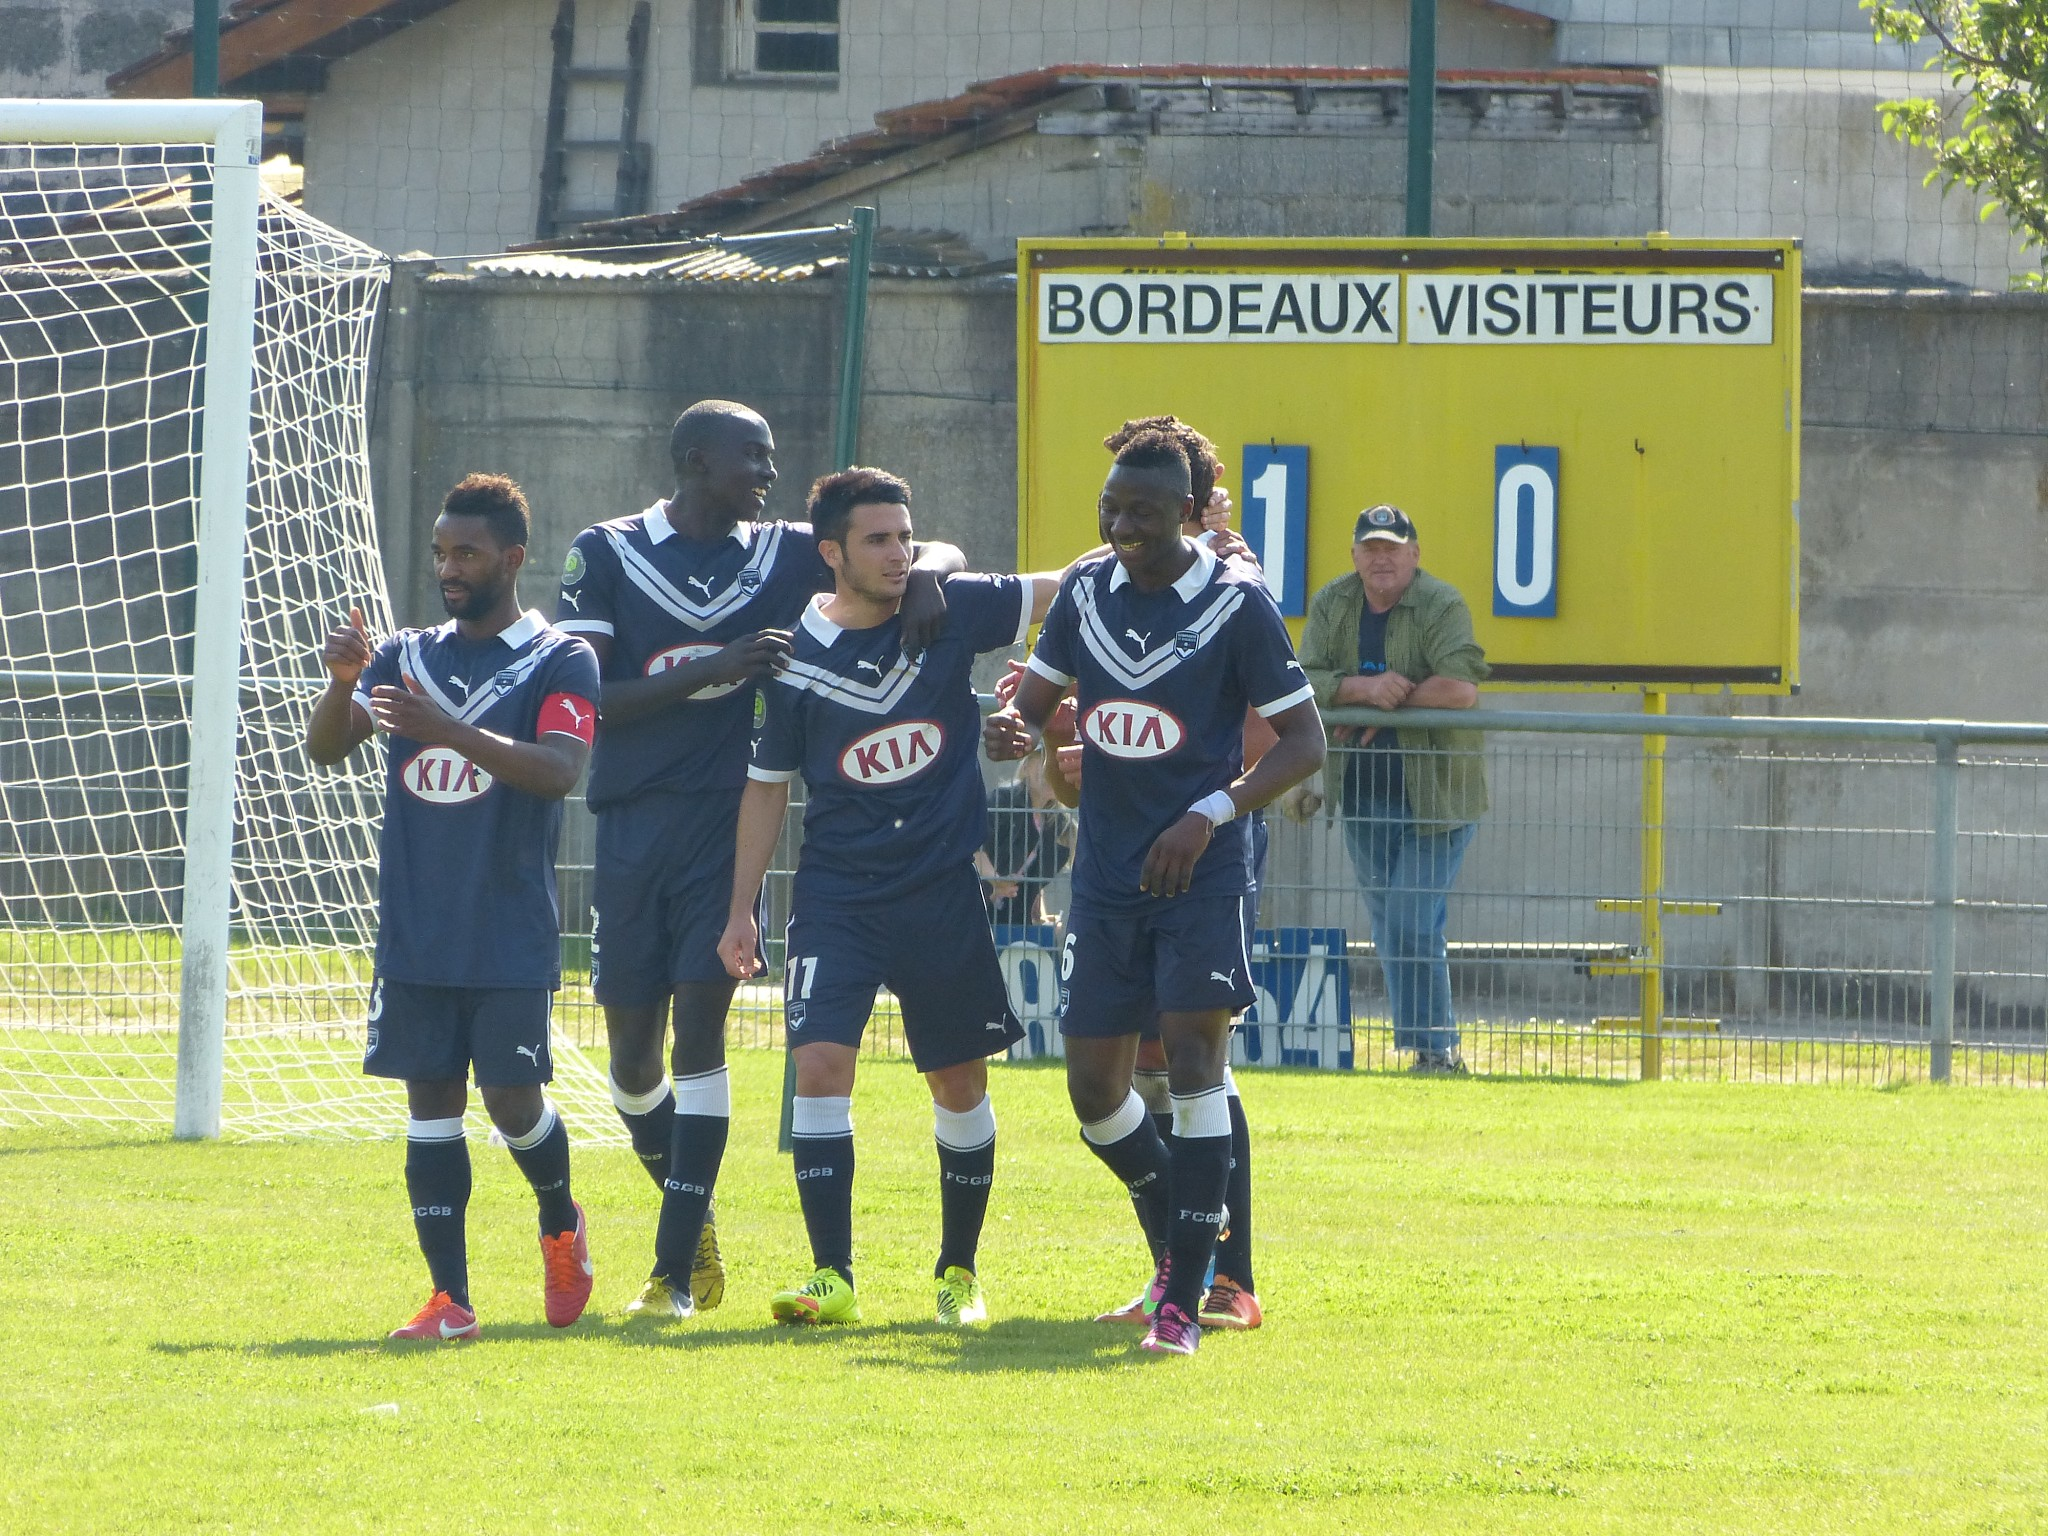 Cfa Girondins : La CFA s'impose 1-0 face aux Herbiers ! - Formation Girondins